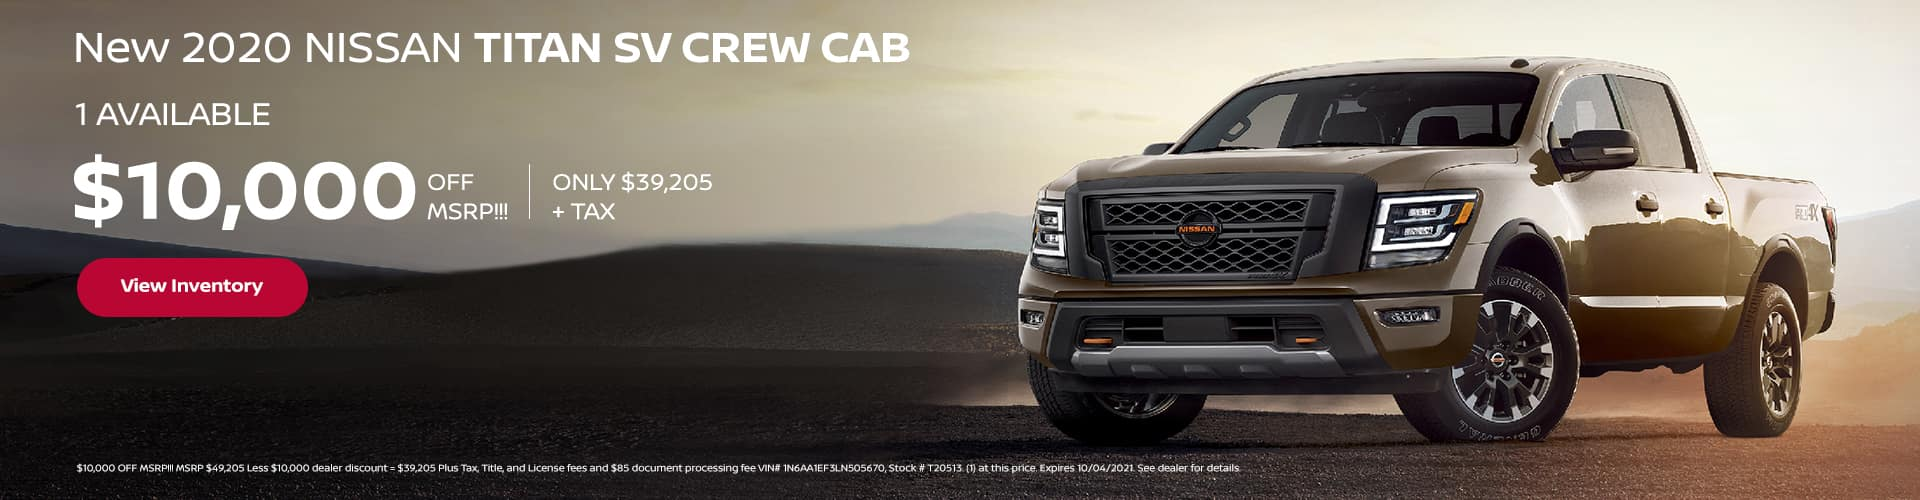 $10,000 OFF MSRP!!! New 2020 Nissan TITAN SV CREW CAB (1) AVAILABLE